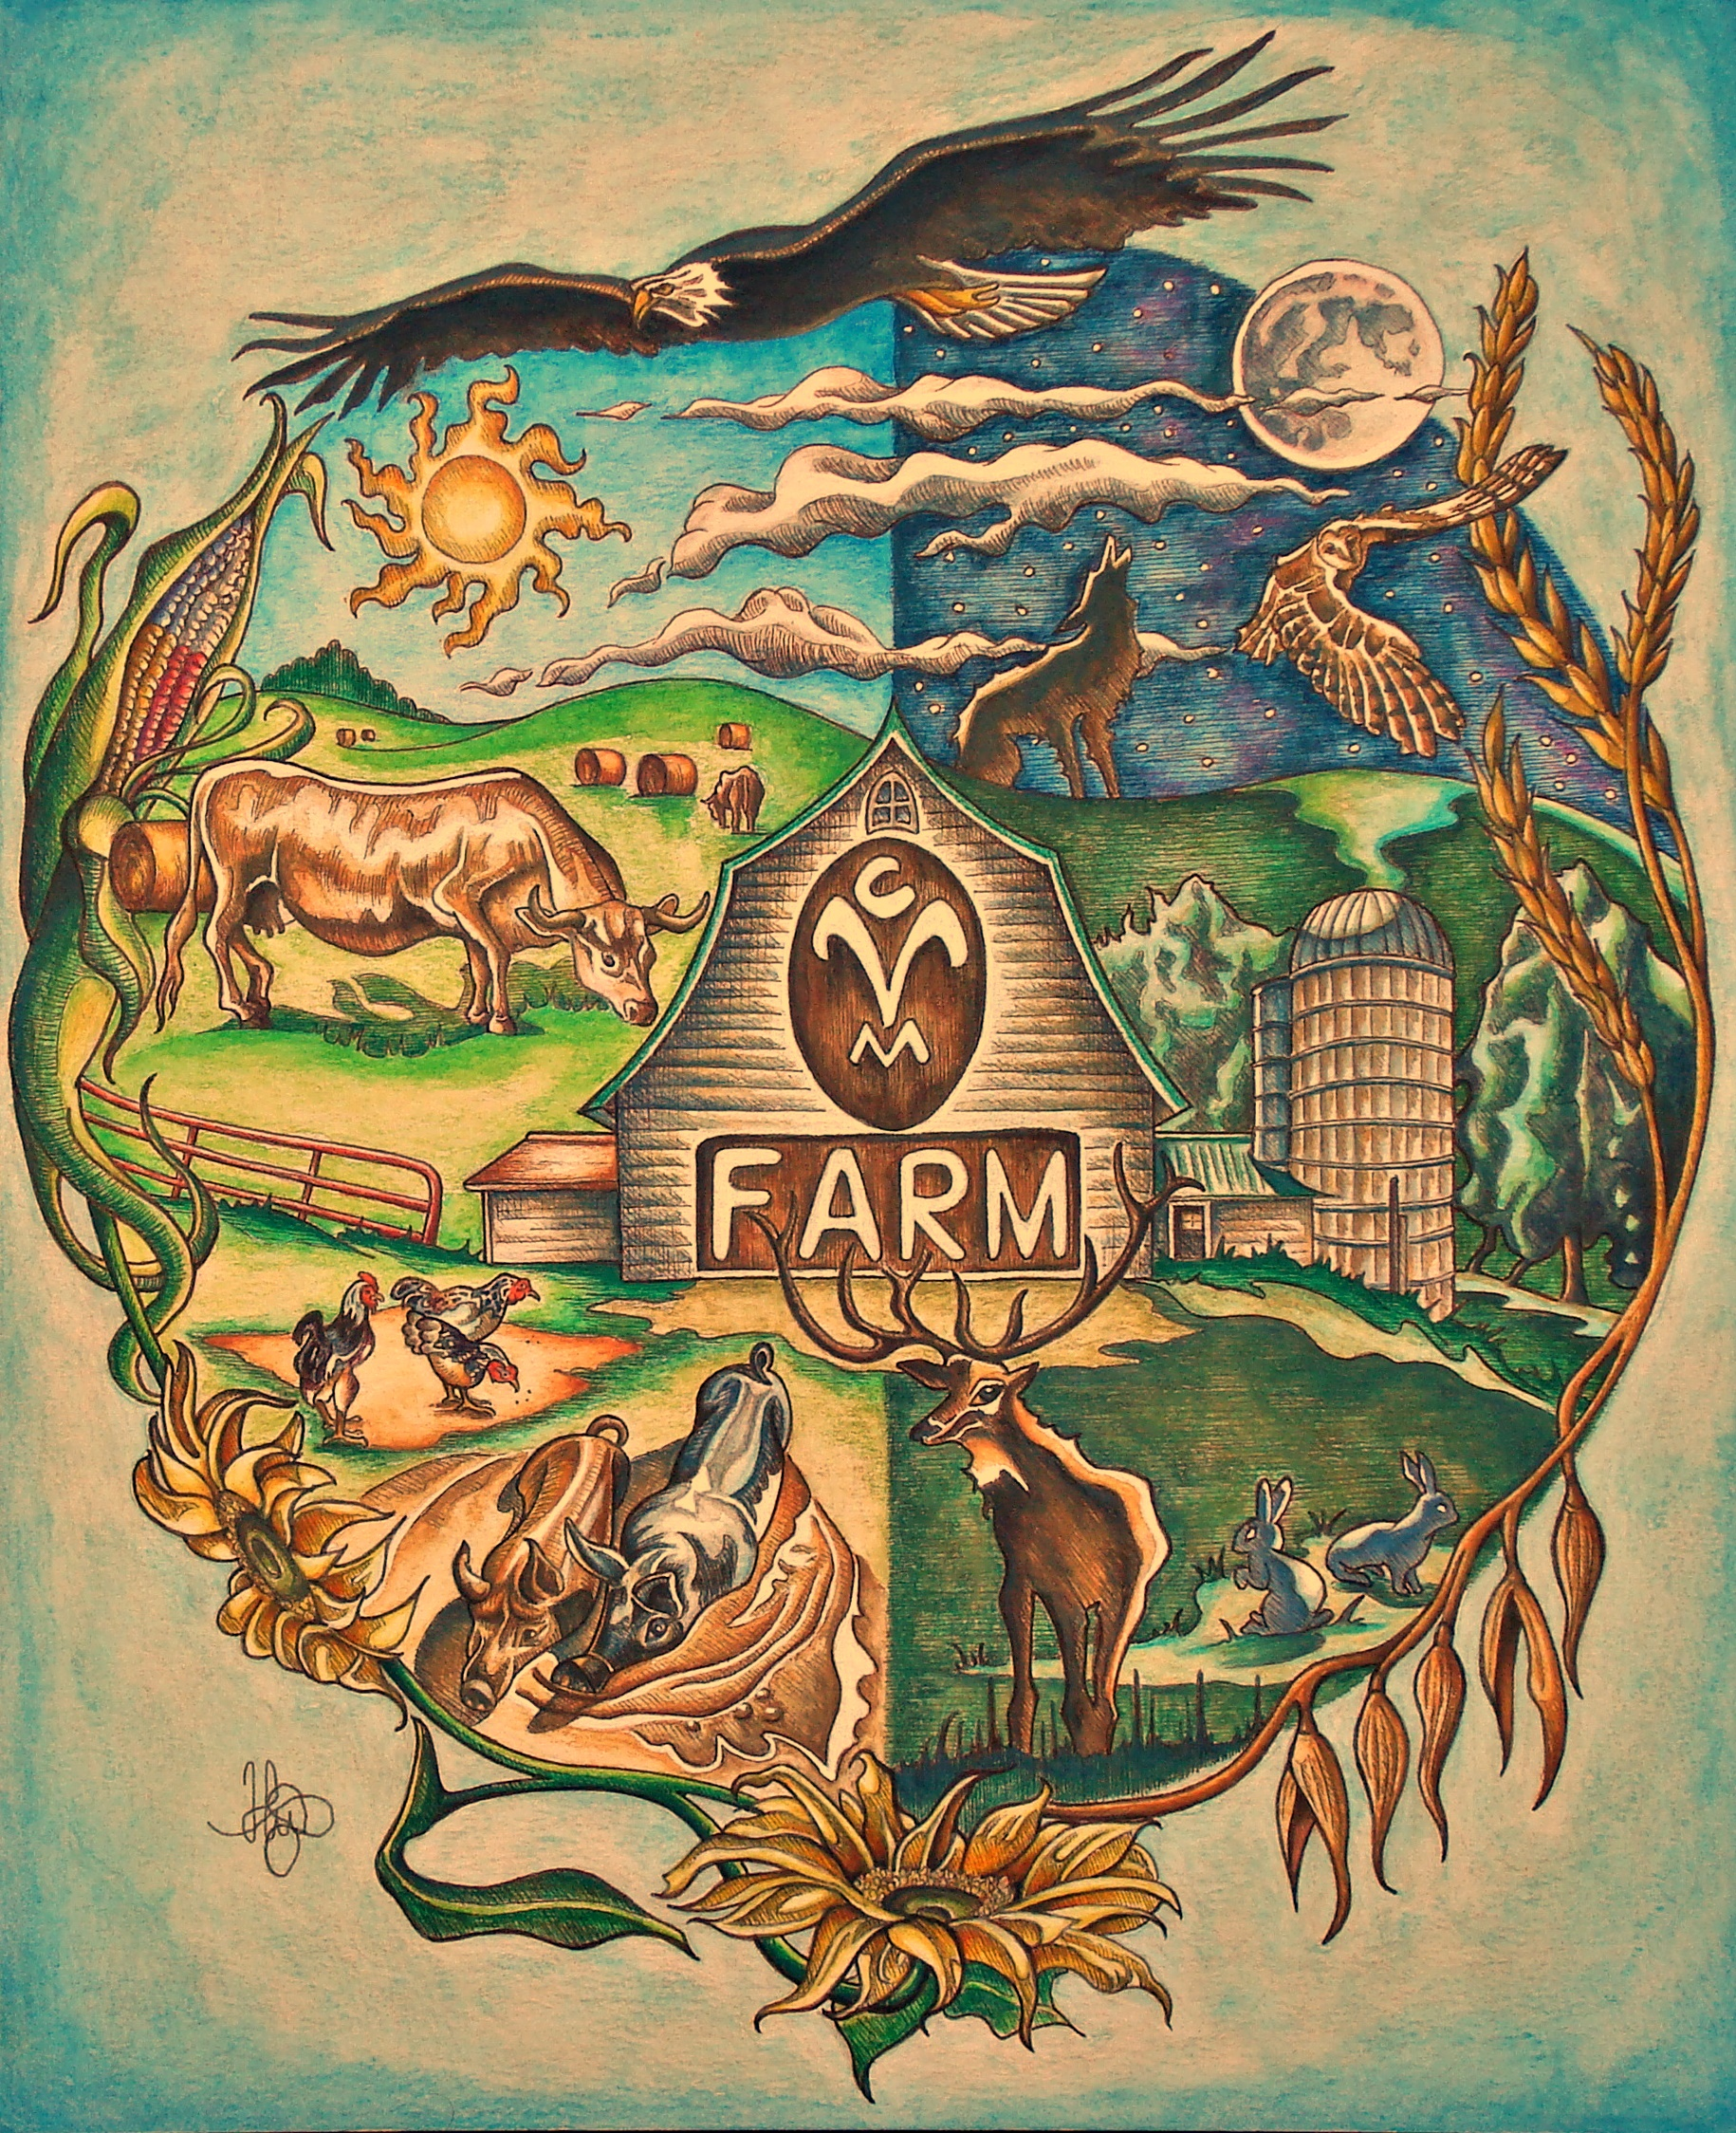 Artwork by Michael Hoet. CVM farm and wild life illustrated. Created with India ink, sepia and watercolor pencil.